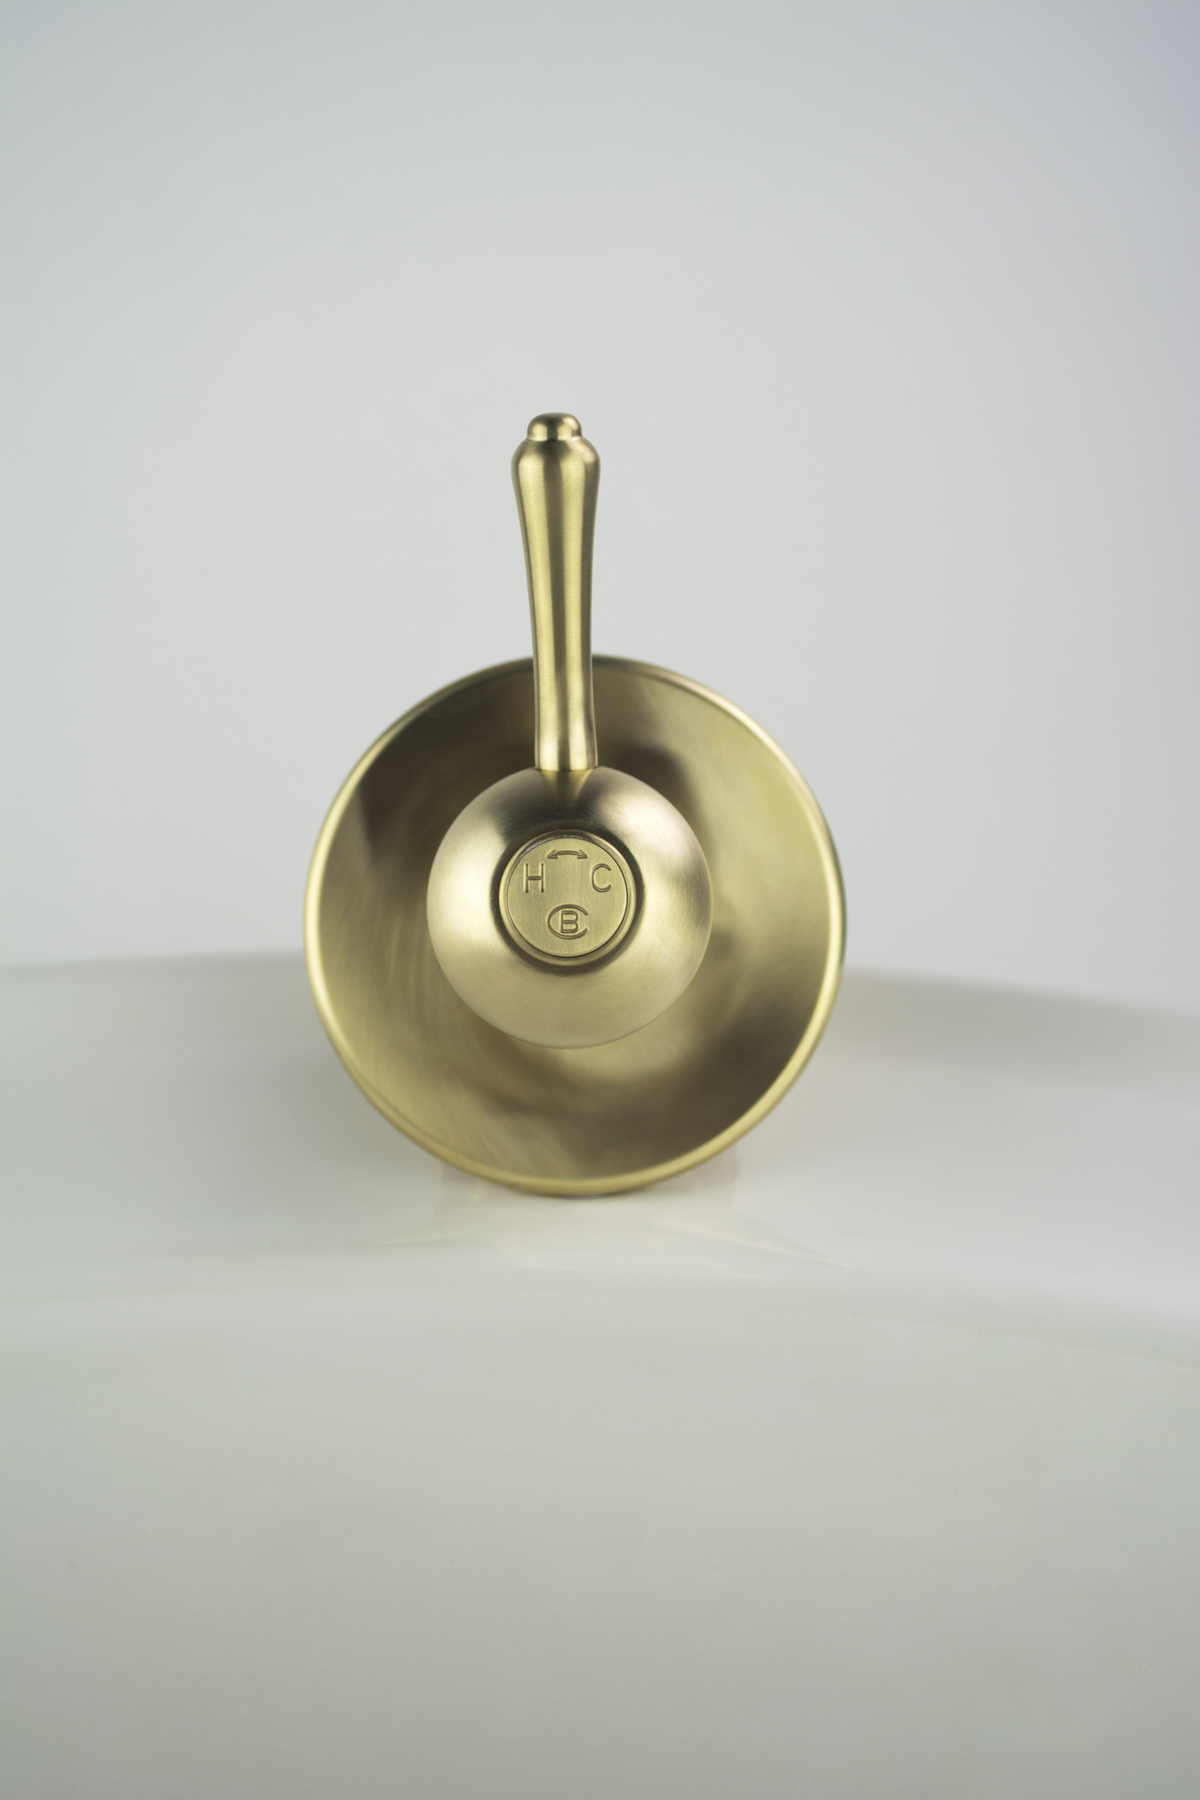 Roulette Lever Wall Mixer in Lea Wheeled Brass finish with Engraved Brass Button Upgrade